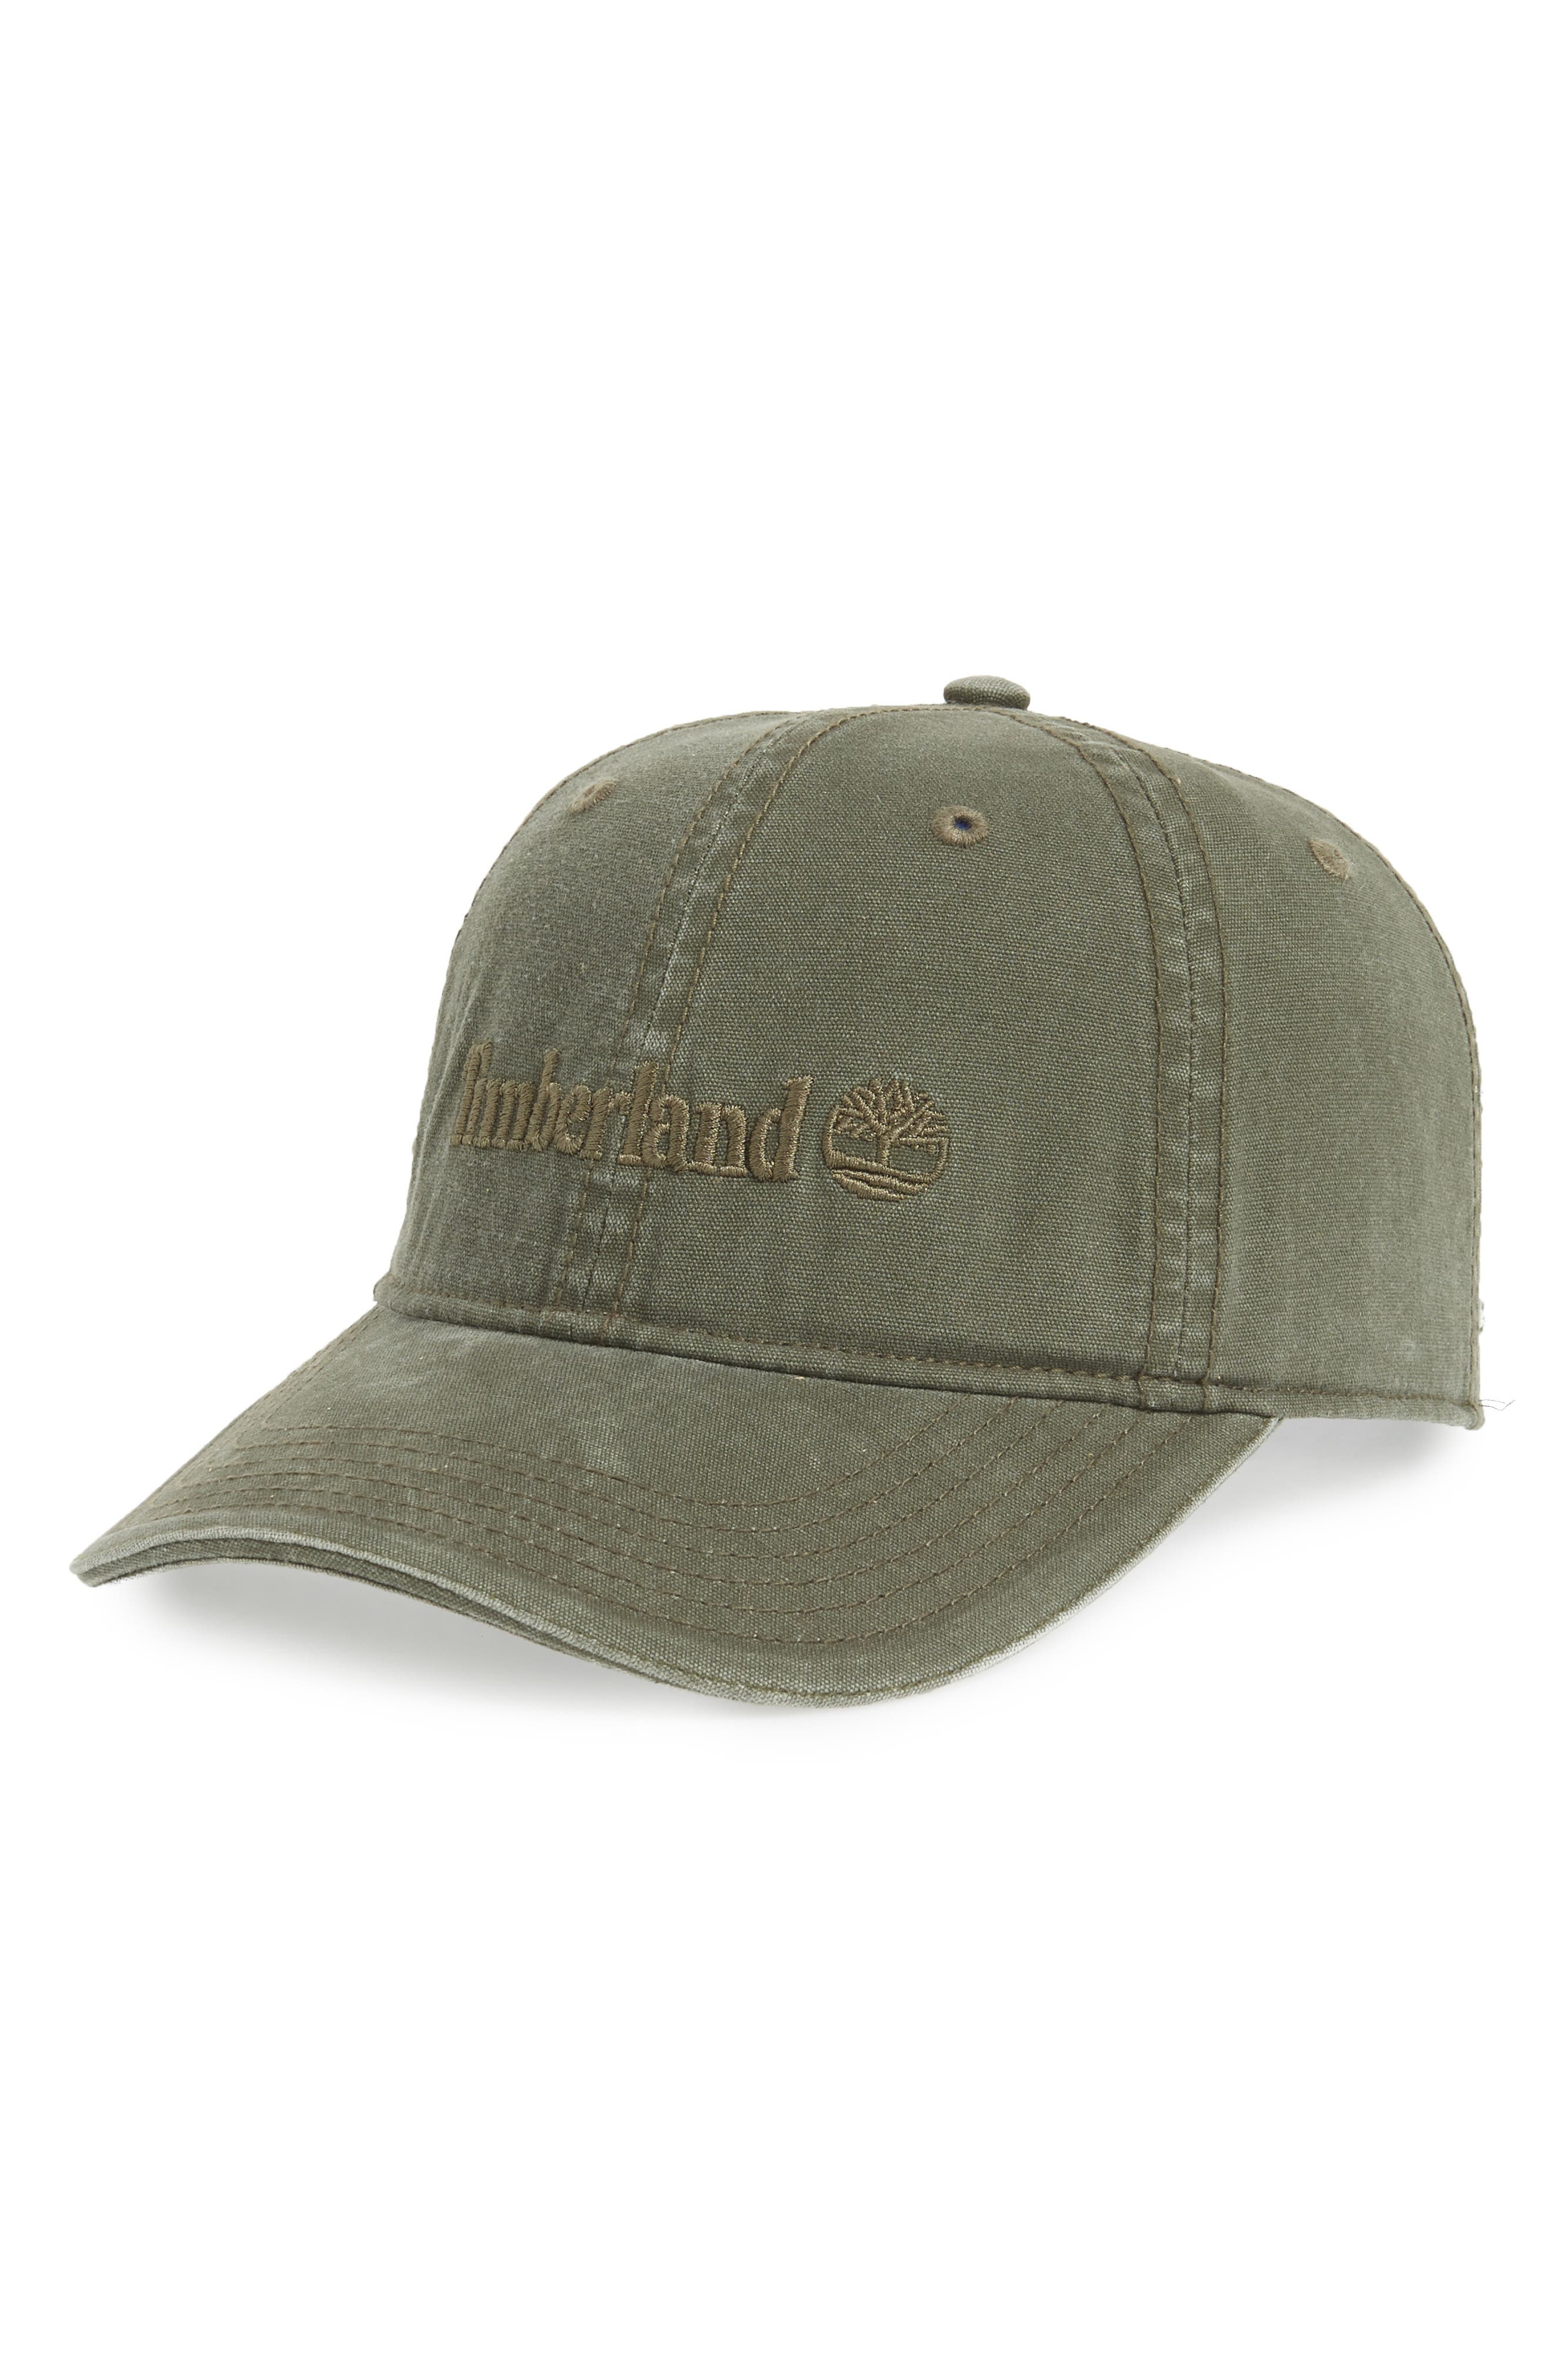 Southport Beach Baseball Cap,                             Main thumbnail 1, color,                             GRAPE LEAF